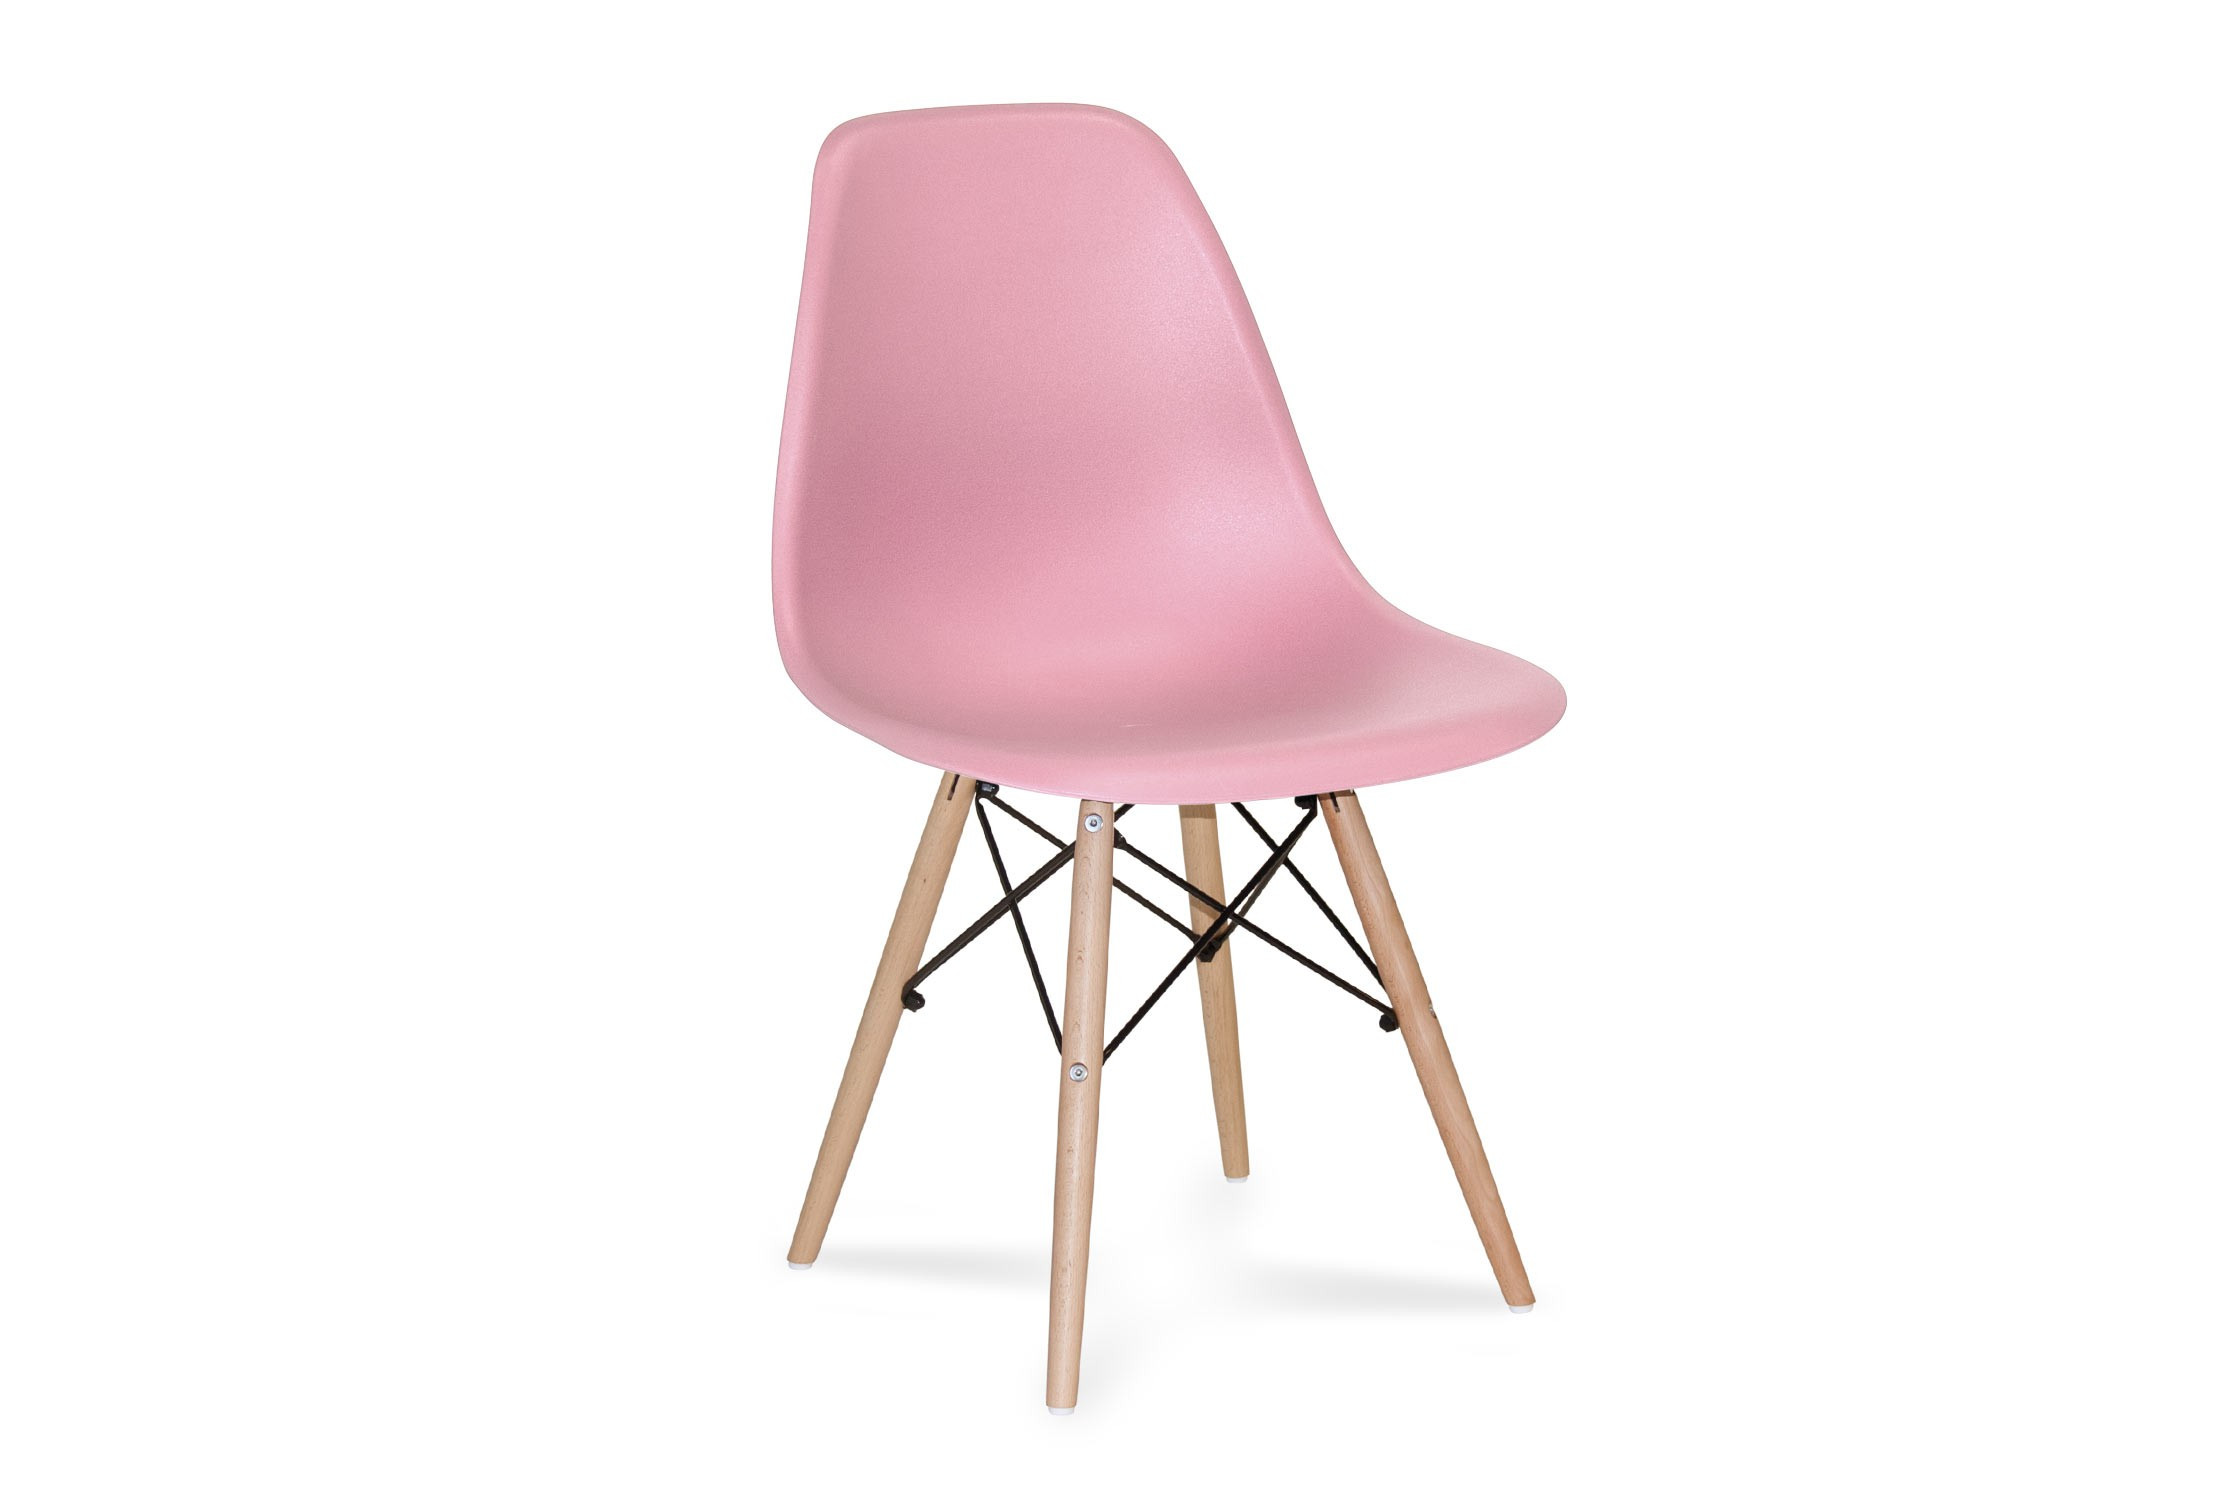 CHAISE TOWER WOOD ROSE EXTRA QUALITY